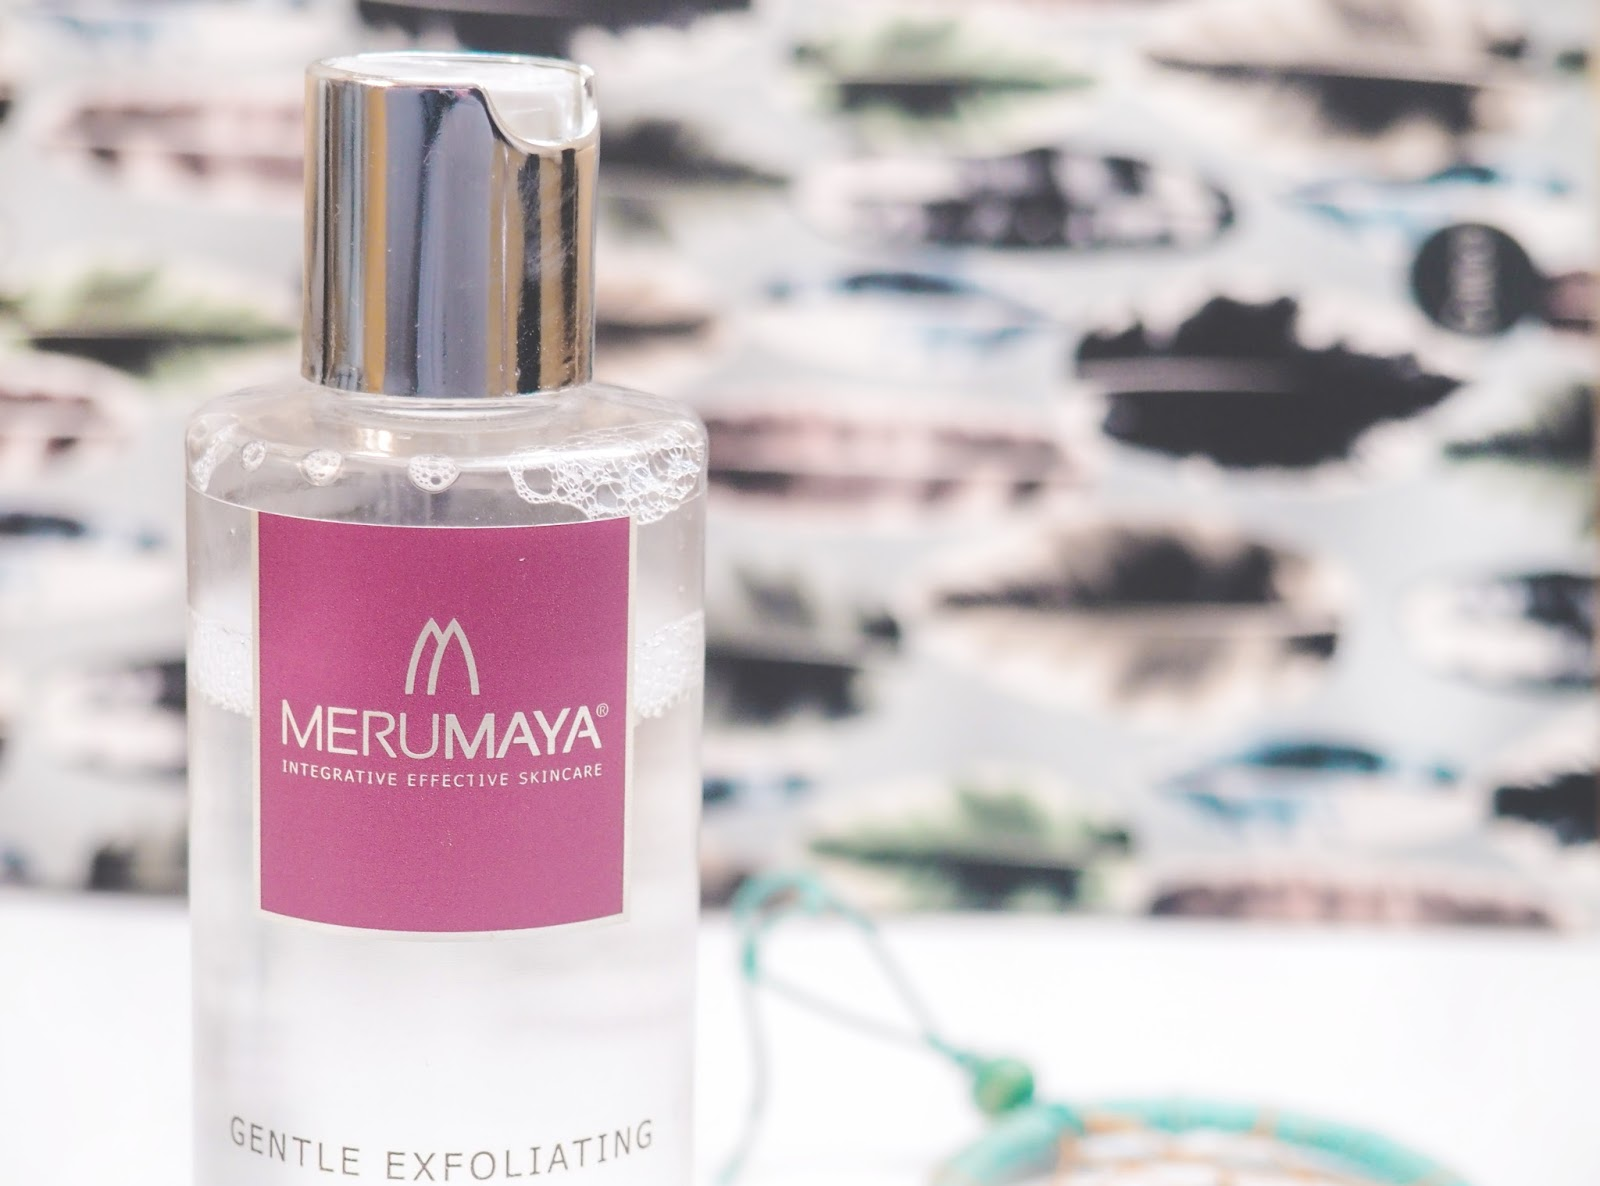 Merumaya Gentle Exfoliating Toner Review